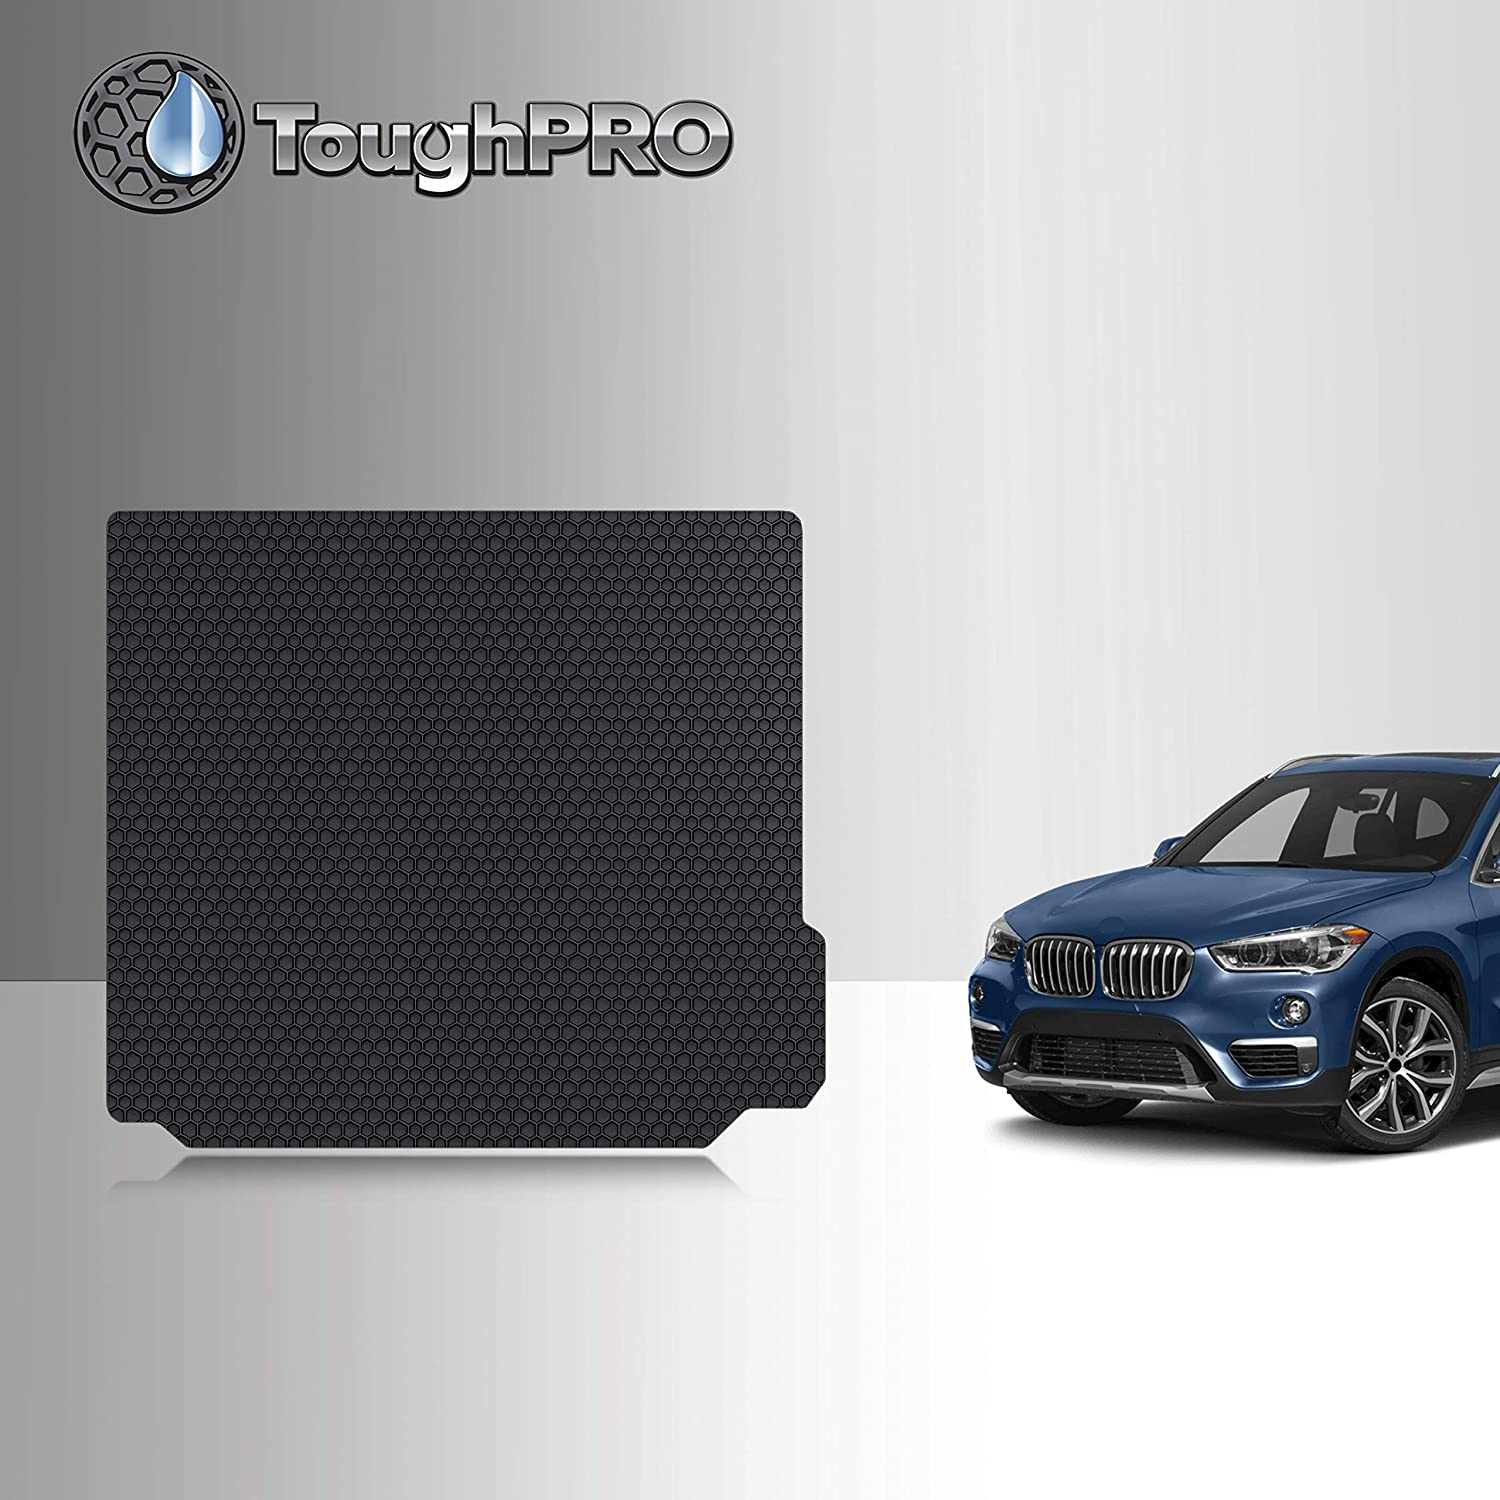 TOUGHPRO Cargo/Trunk Mat Accessories Compatible with BMW X3 - with Cargo Tie Down Rails - All Weather - Heavy Duty - (Made in USA) - Black Rubber - 2018, 2019, 2020